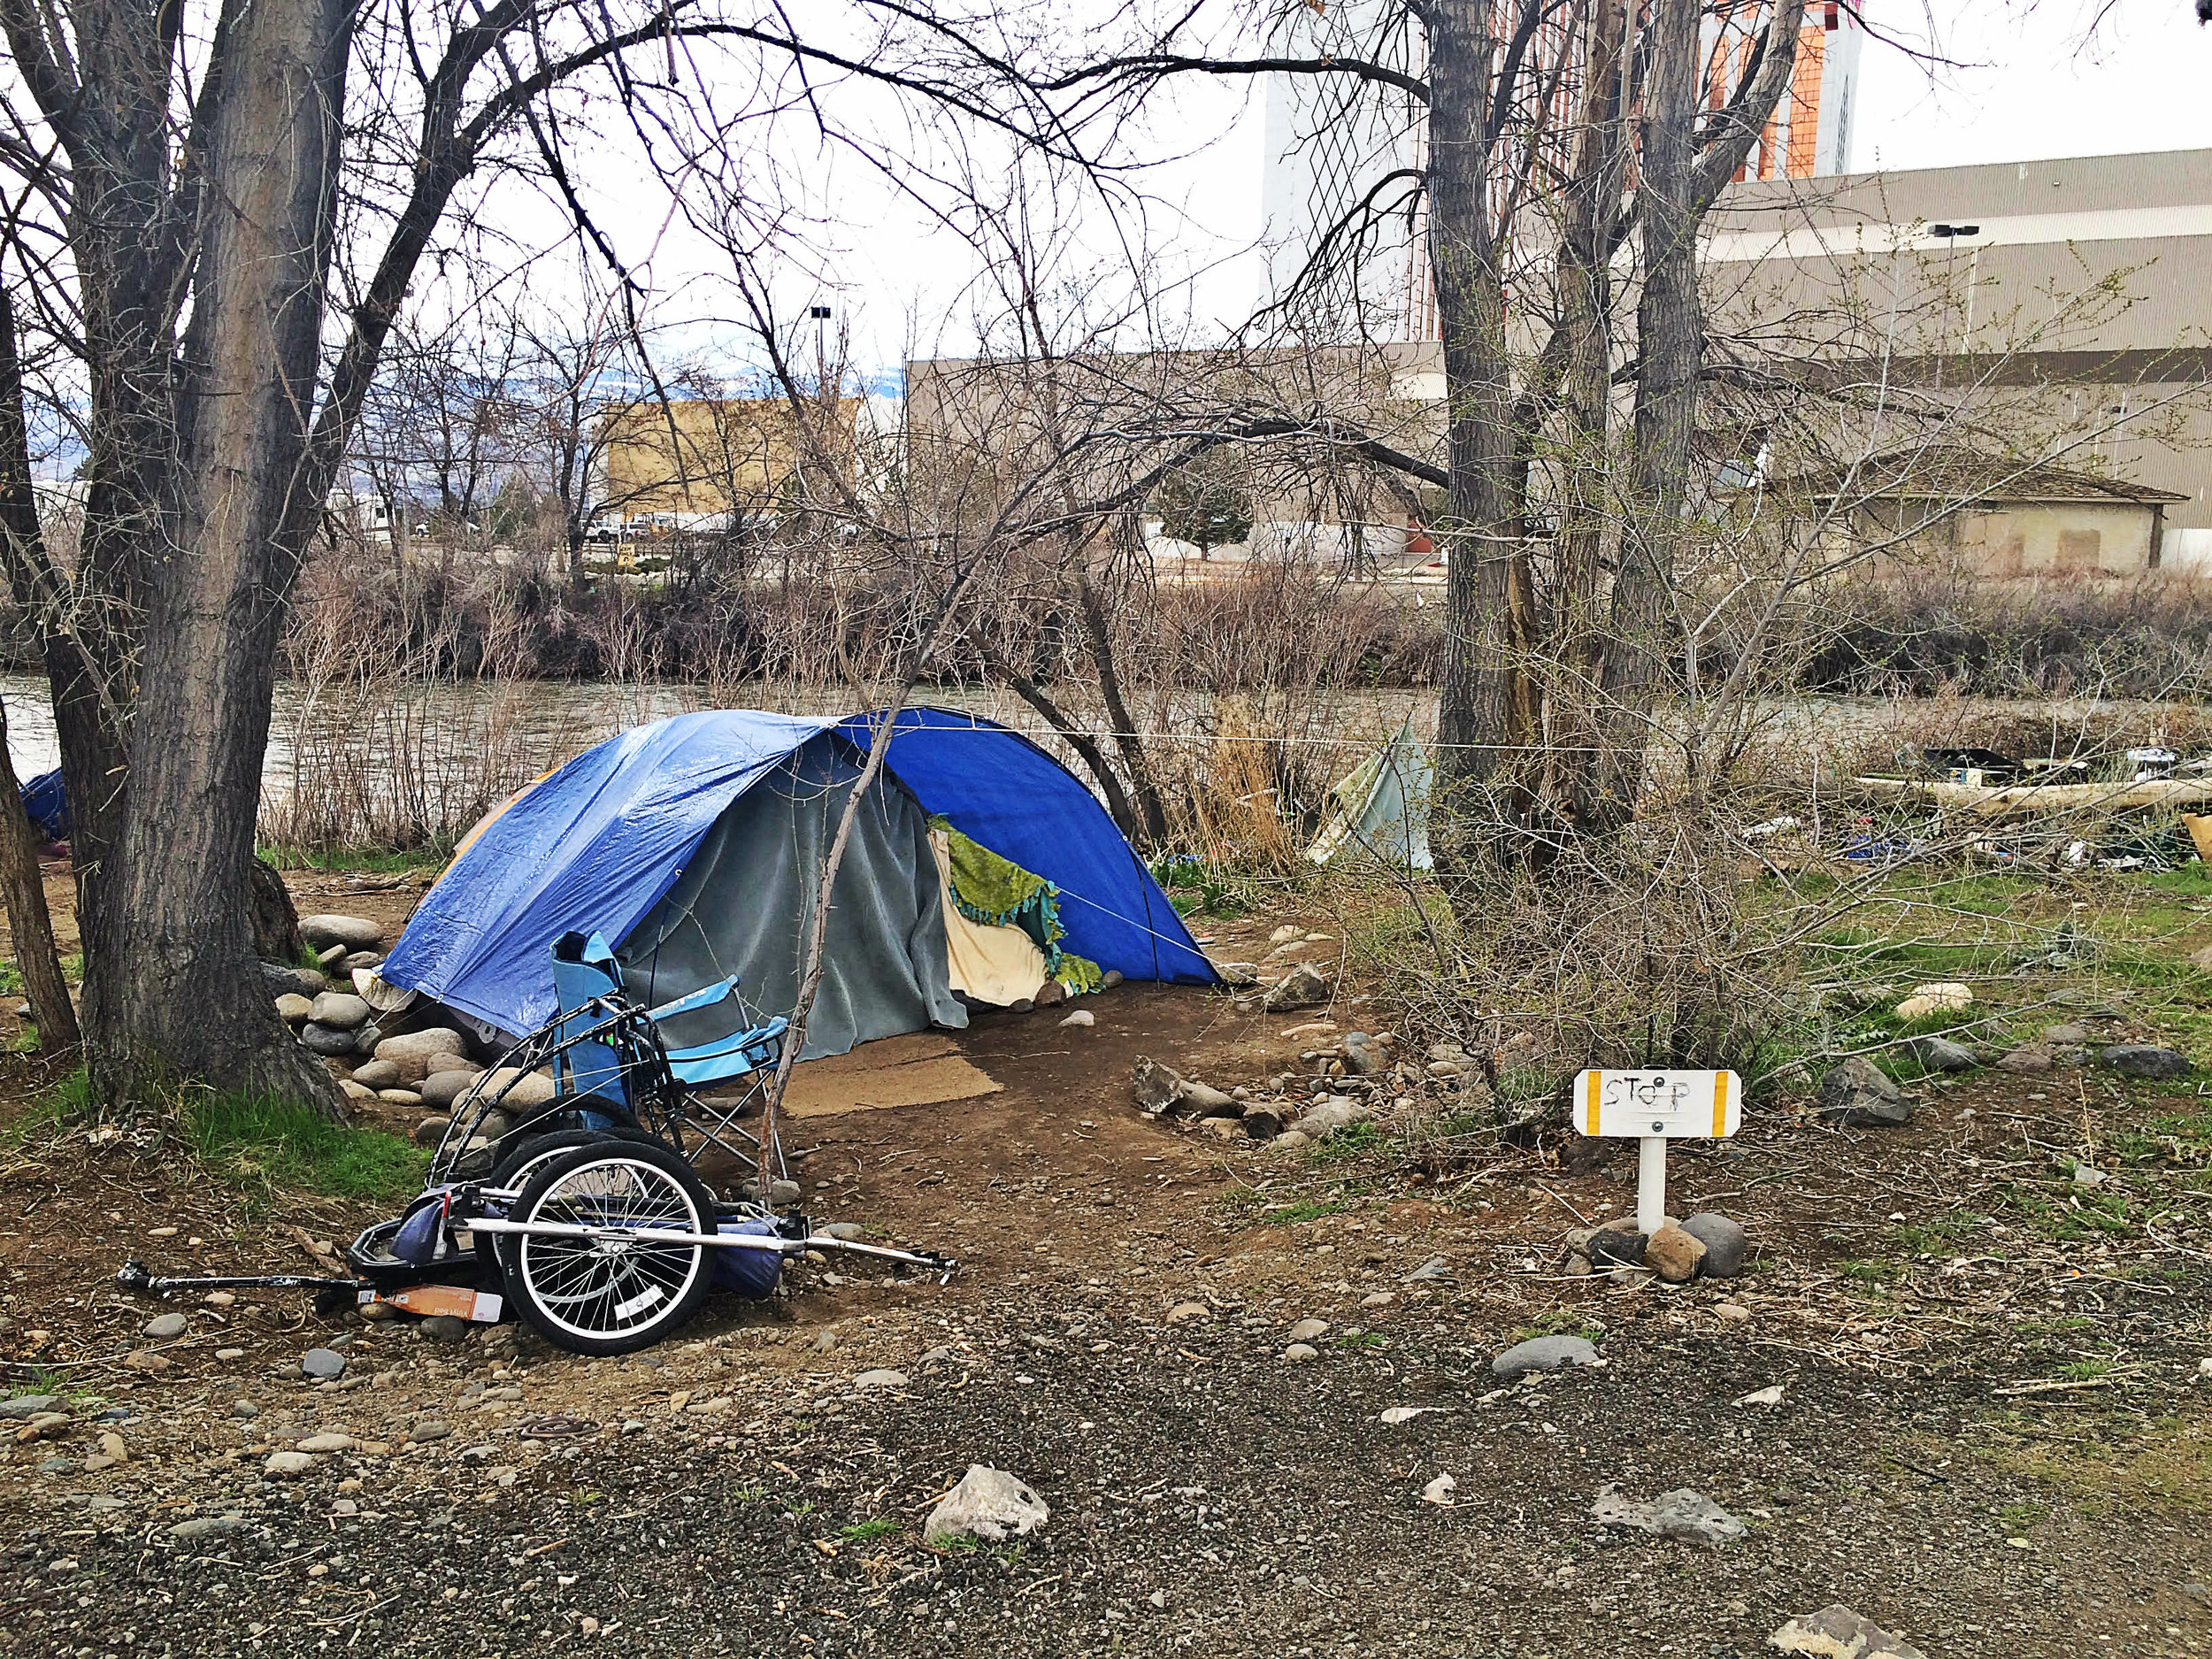 One of the tents in this encampment has a sign reading 'stop' at its entrance. Photo by Monica Gomez